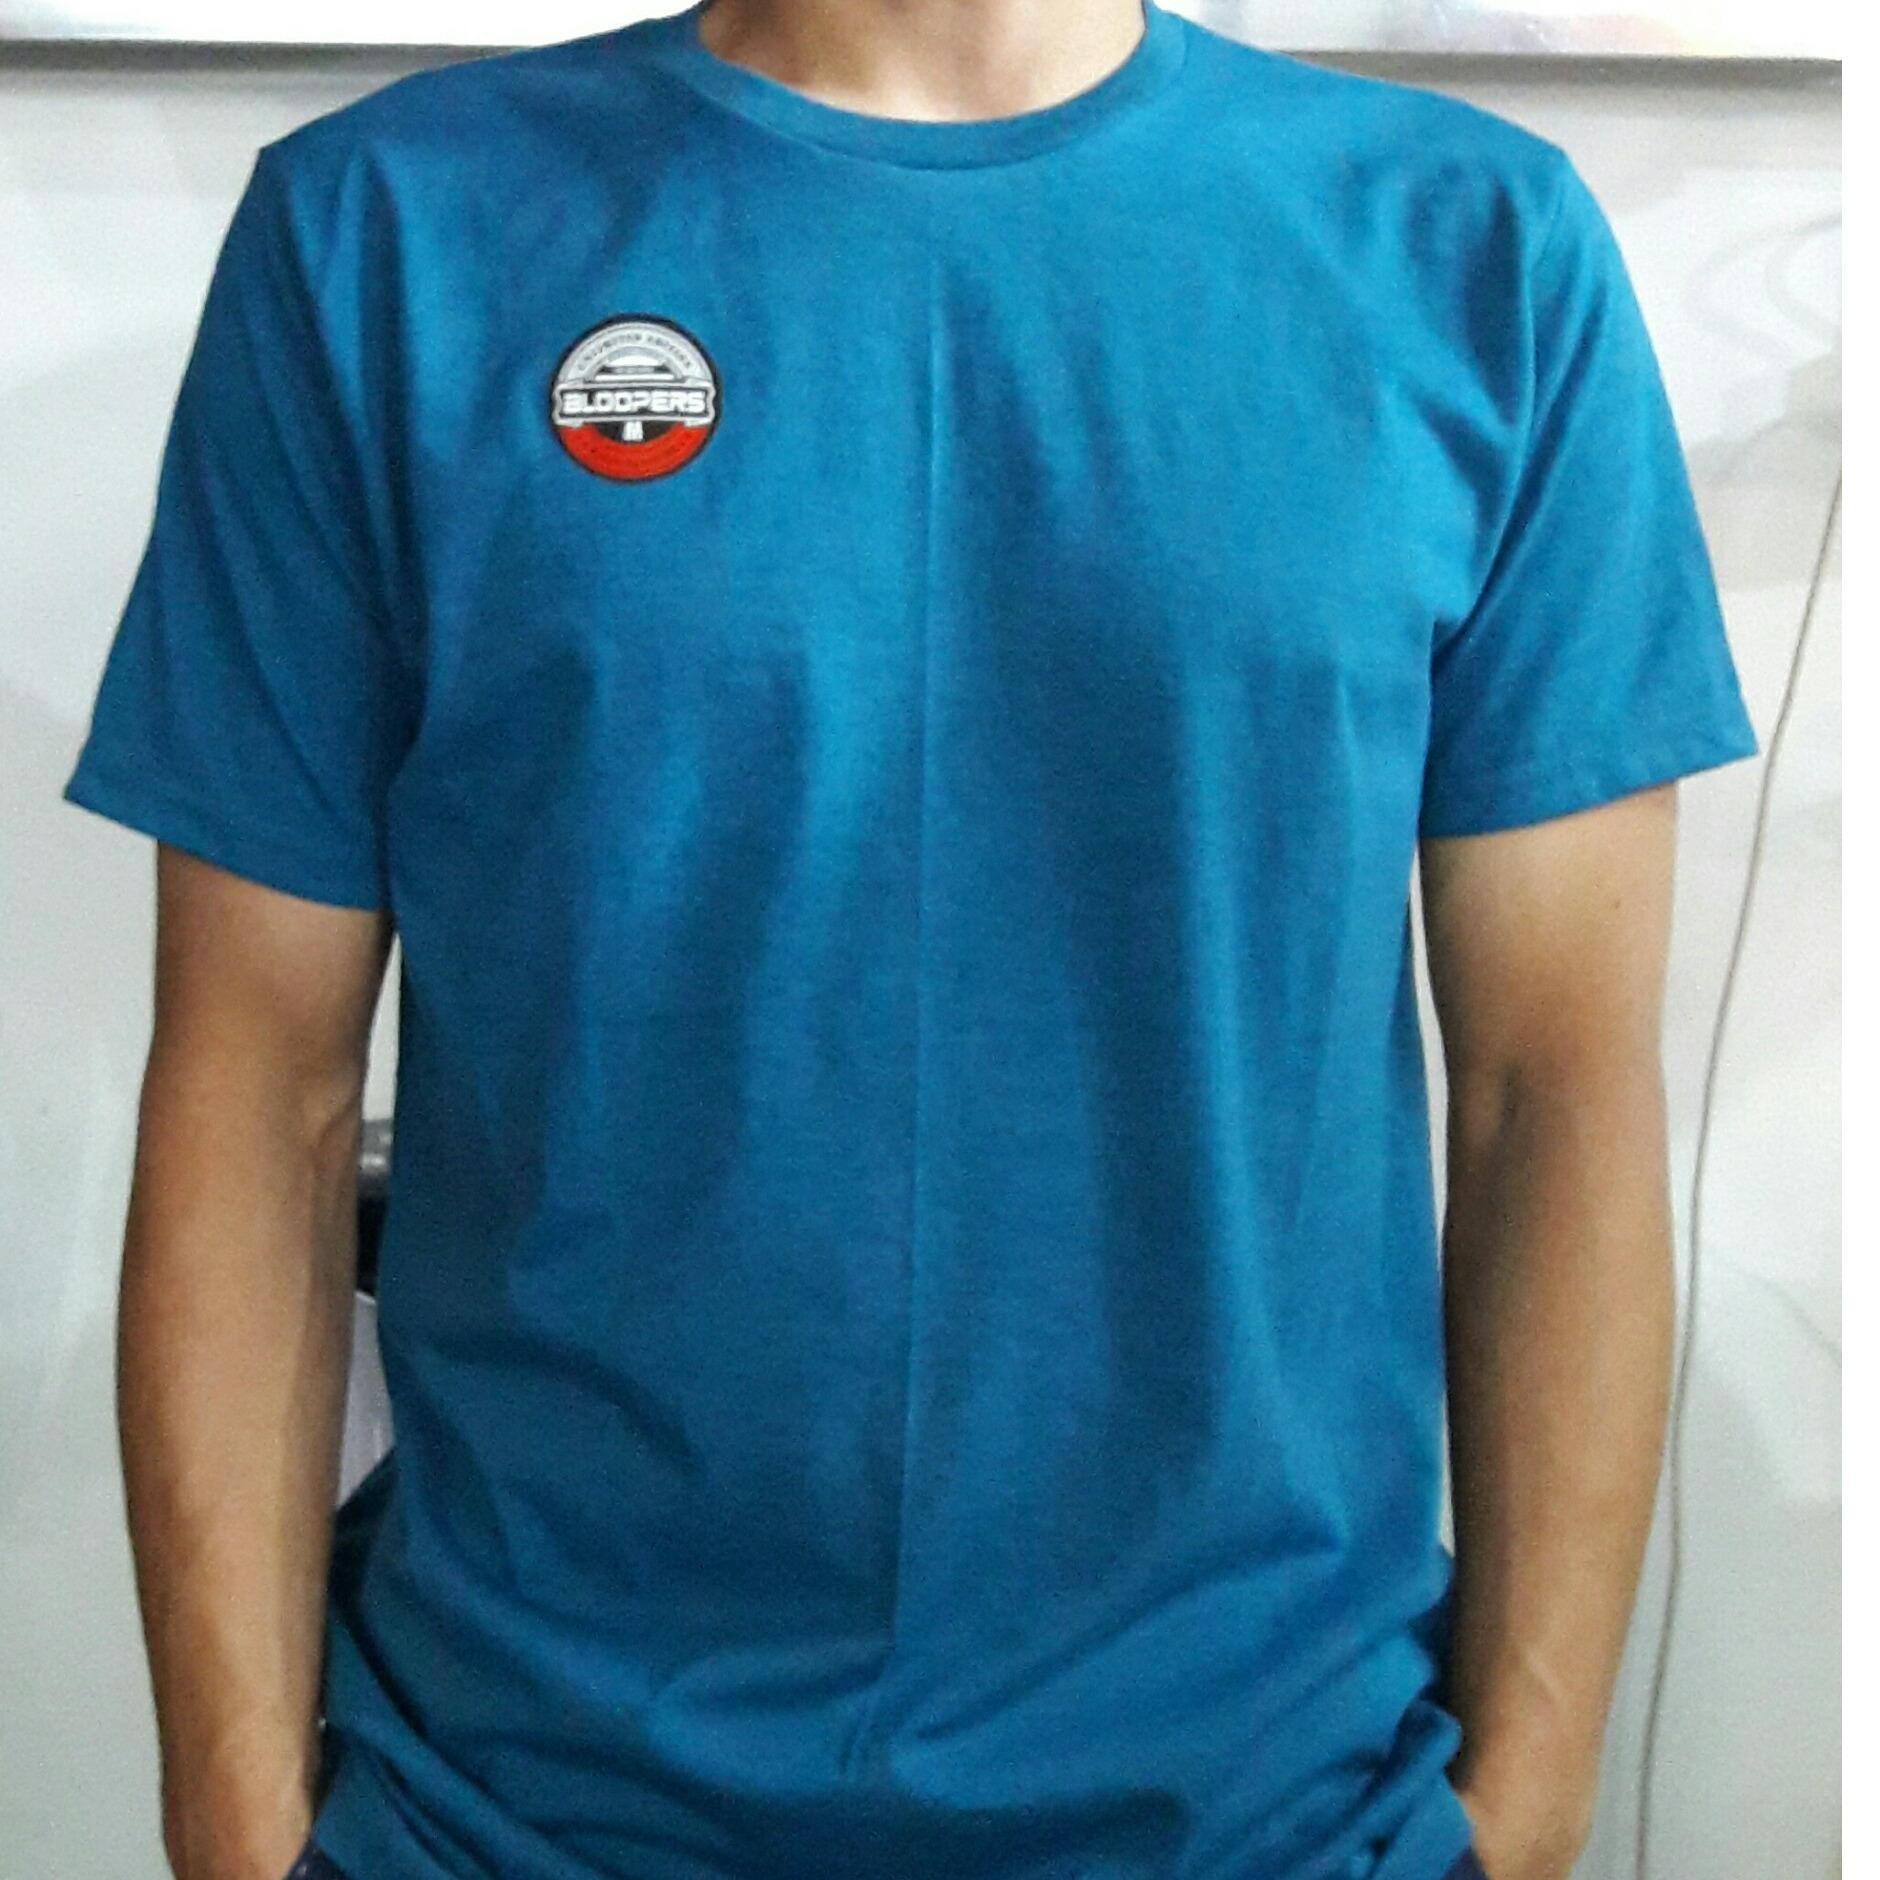 Buy Sell Cheapest 3r Kaos Polos Best Quality Product Deals Green Misty 30s Pria Biru